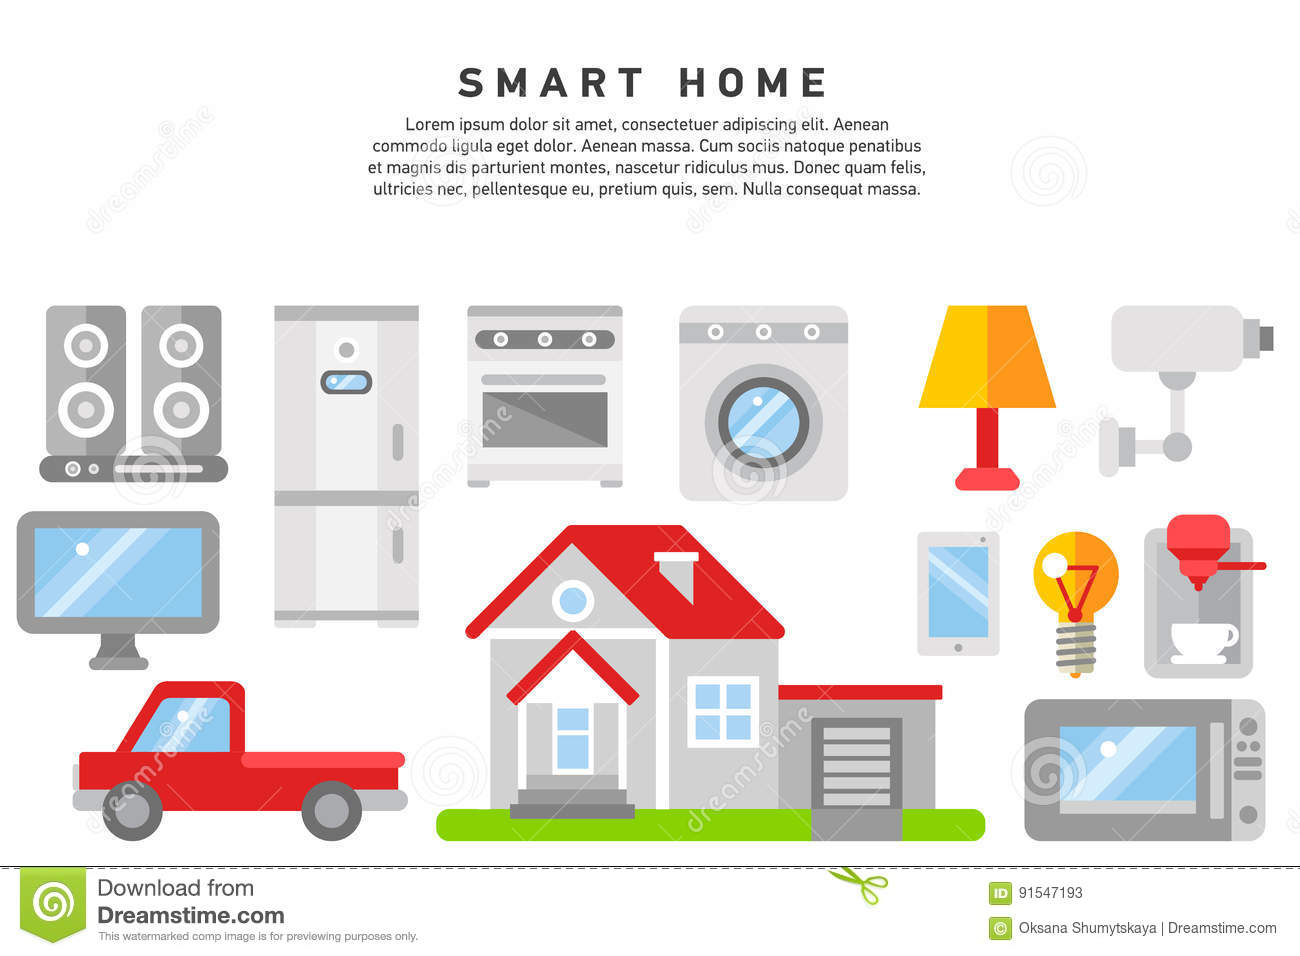 smart home iot internet of thing stock vector illustration of devices icon 91547193. Black Bedroom Furniture Sets. Home Design Ideas